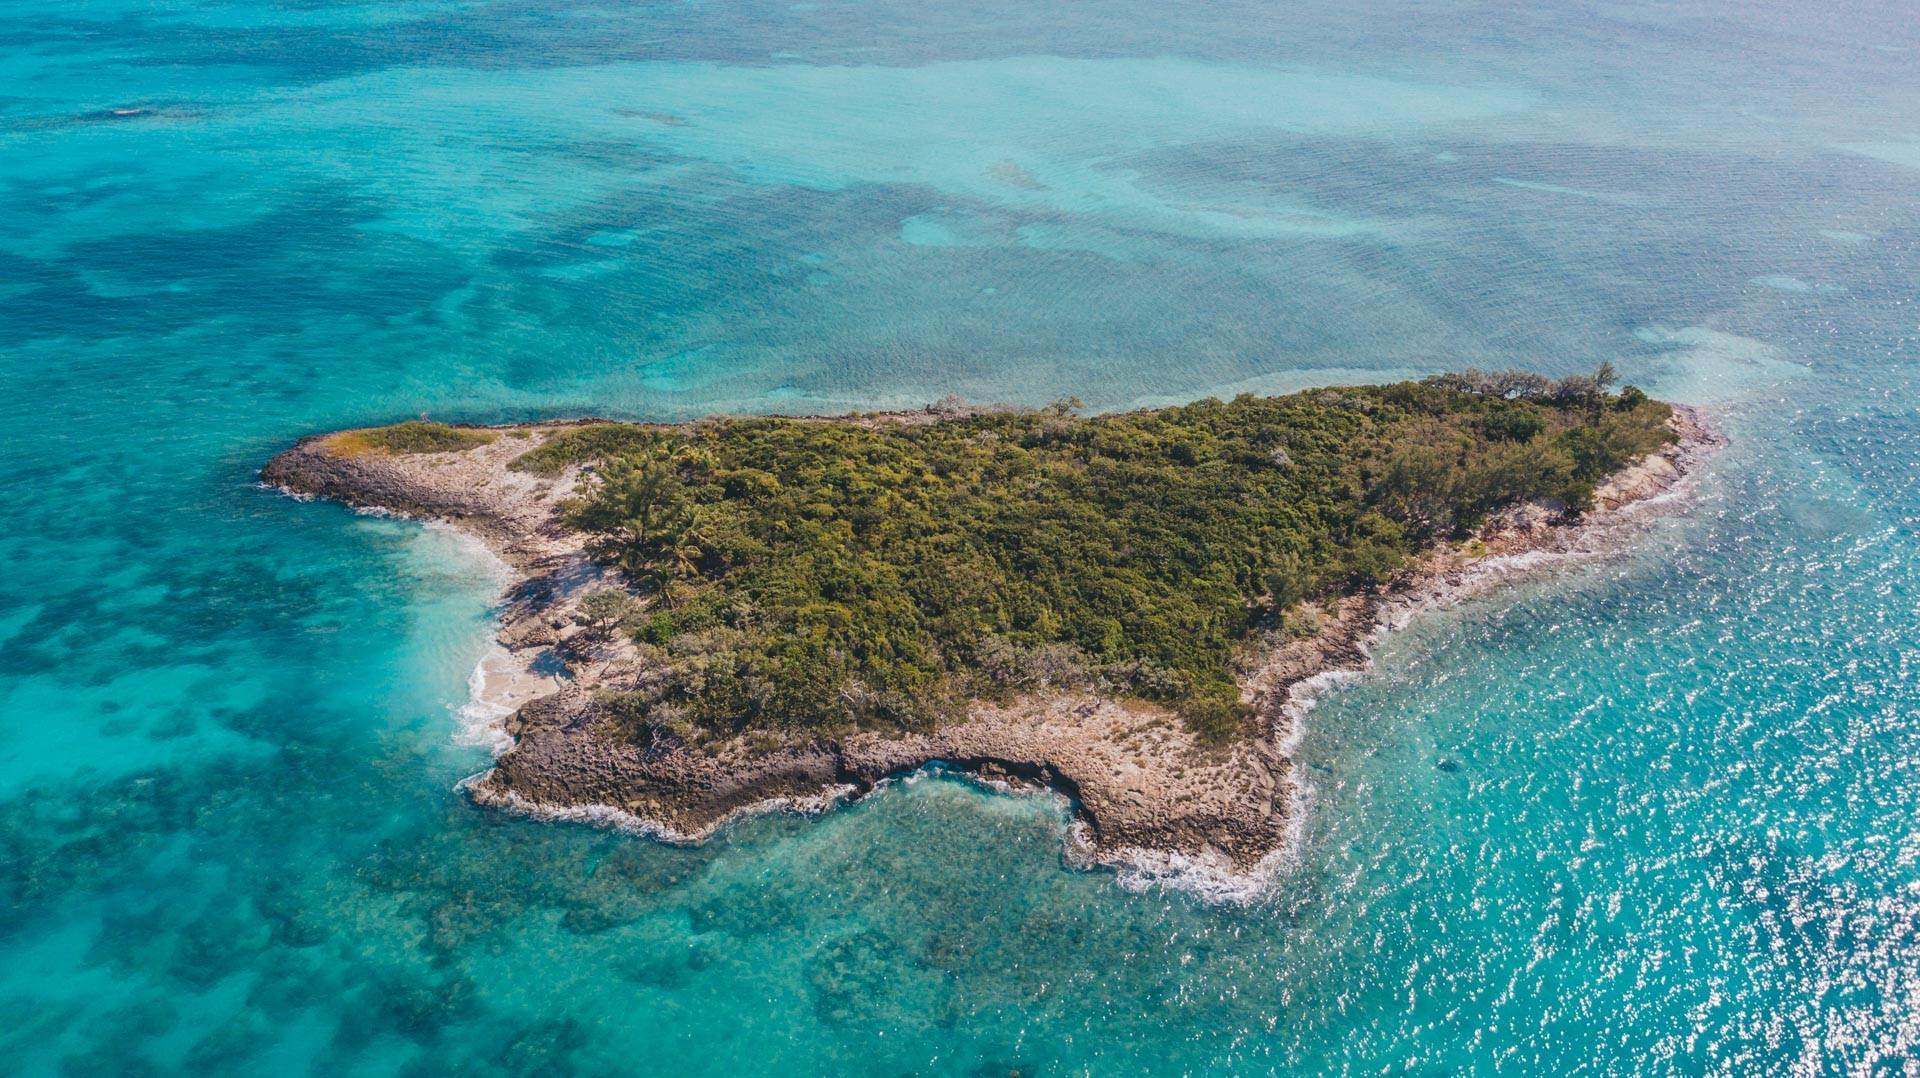 Private Islands for Sale at Golding Cay, Near Russell Island, Eleuthera Russell Island, Eleuthera, Bahamas